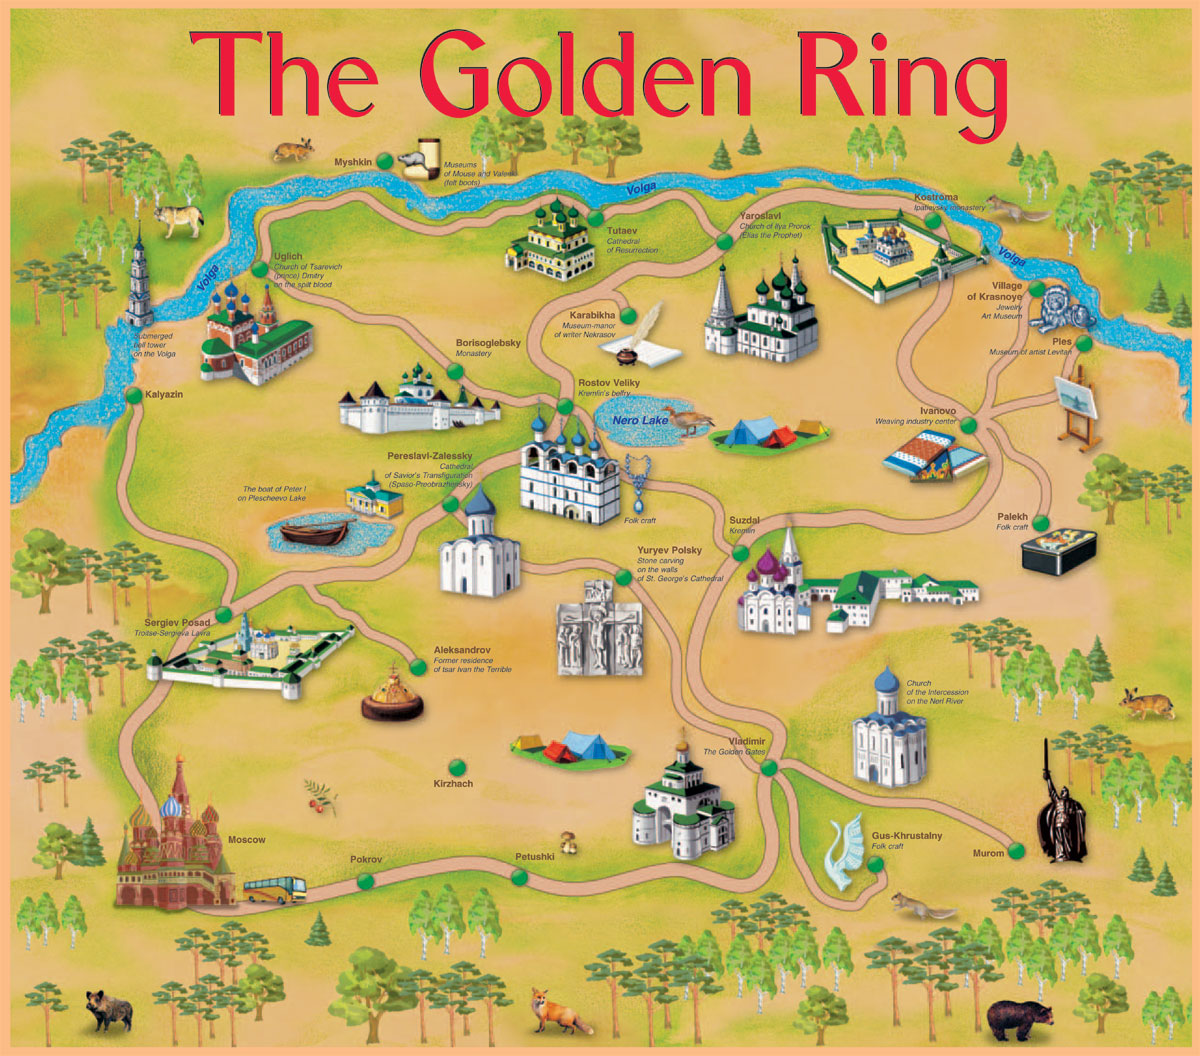 map_golden_ring.jpg